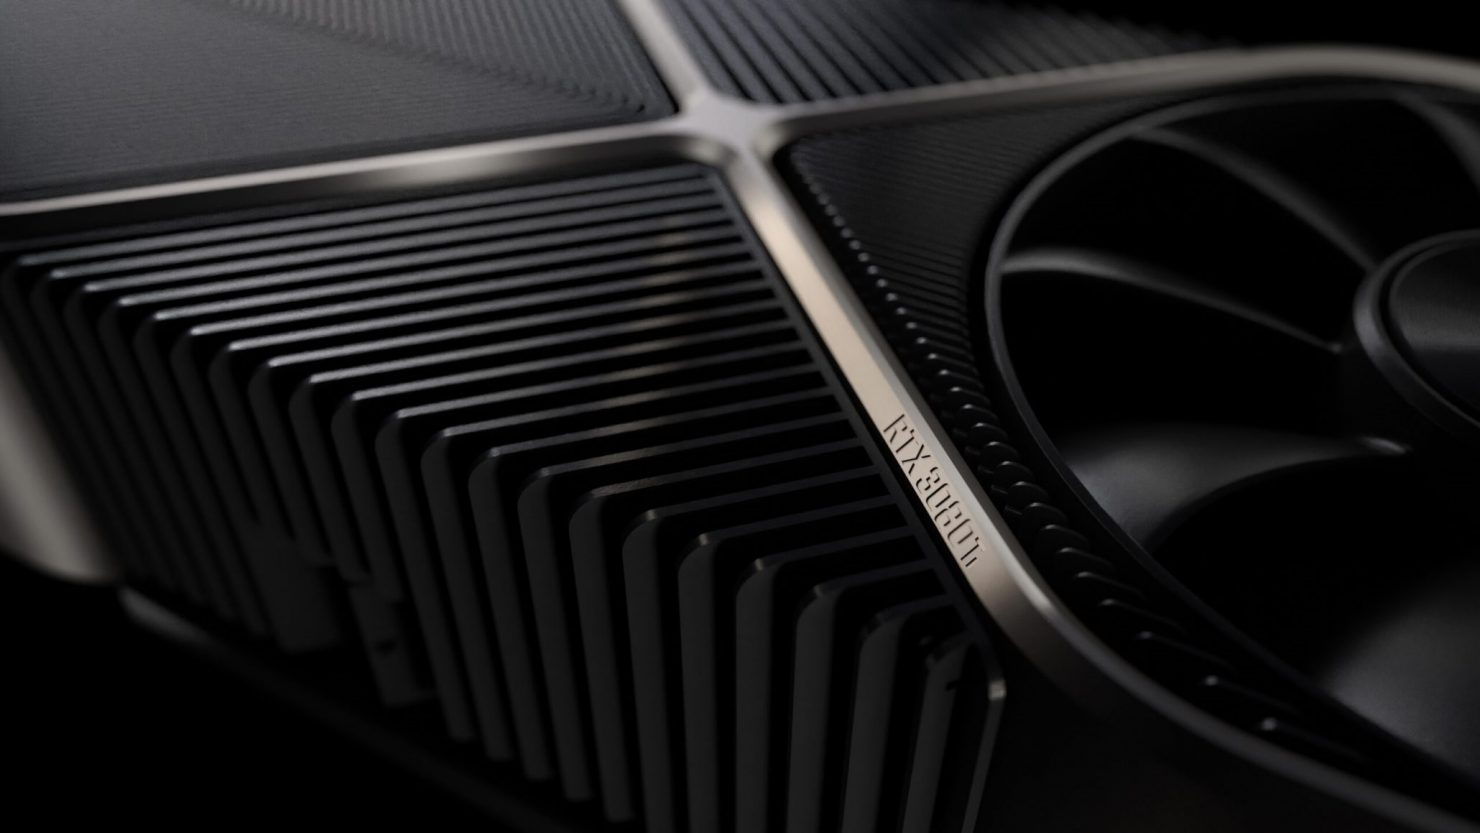 exclusive:-nvidia-geforce-rtx-3080-ti-and-rtx-3070-ti-availability-details